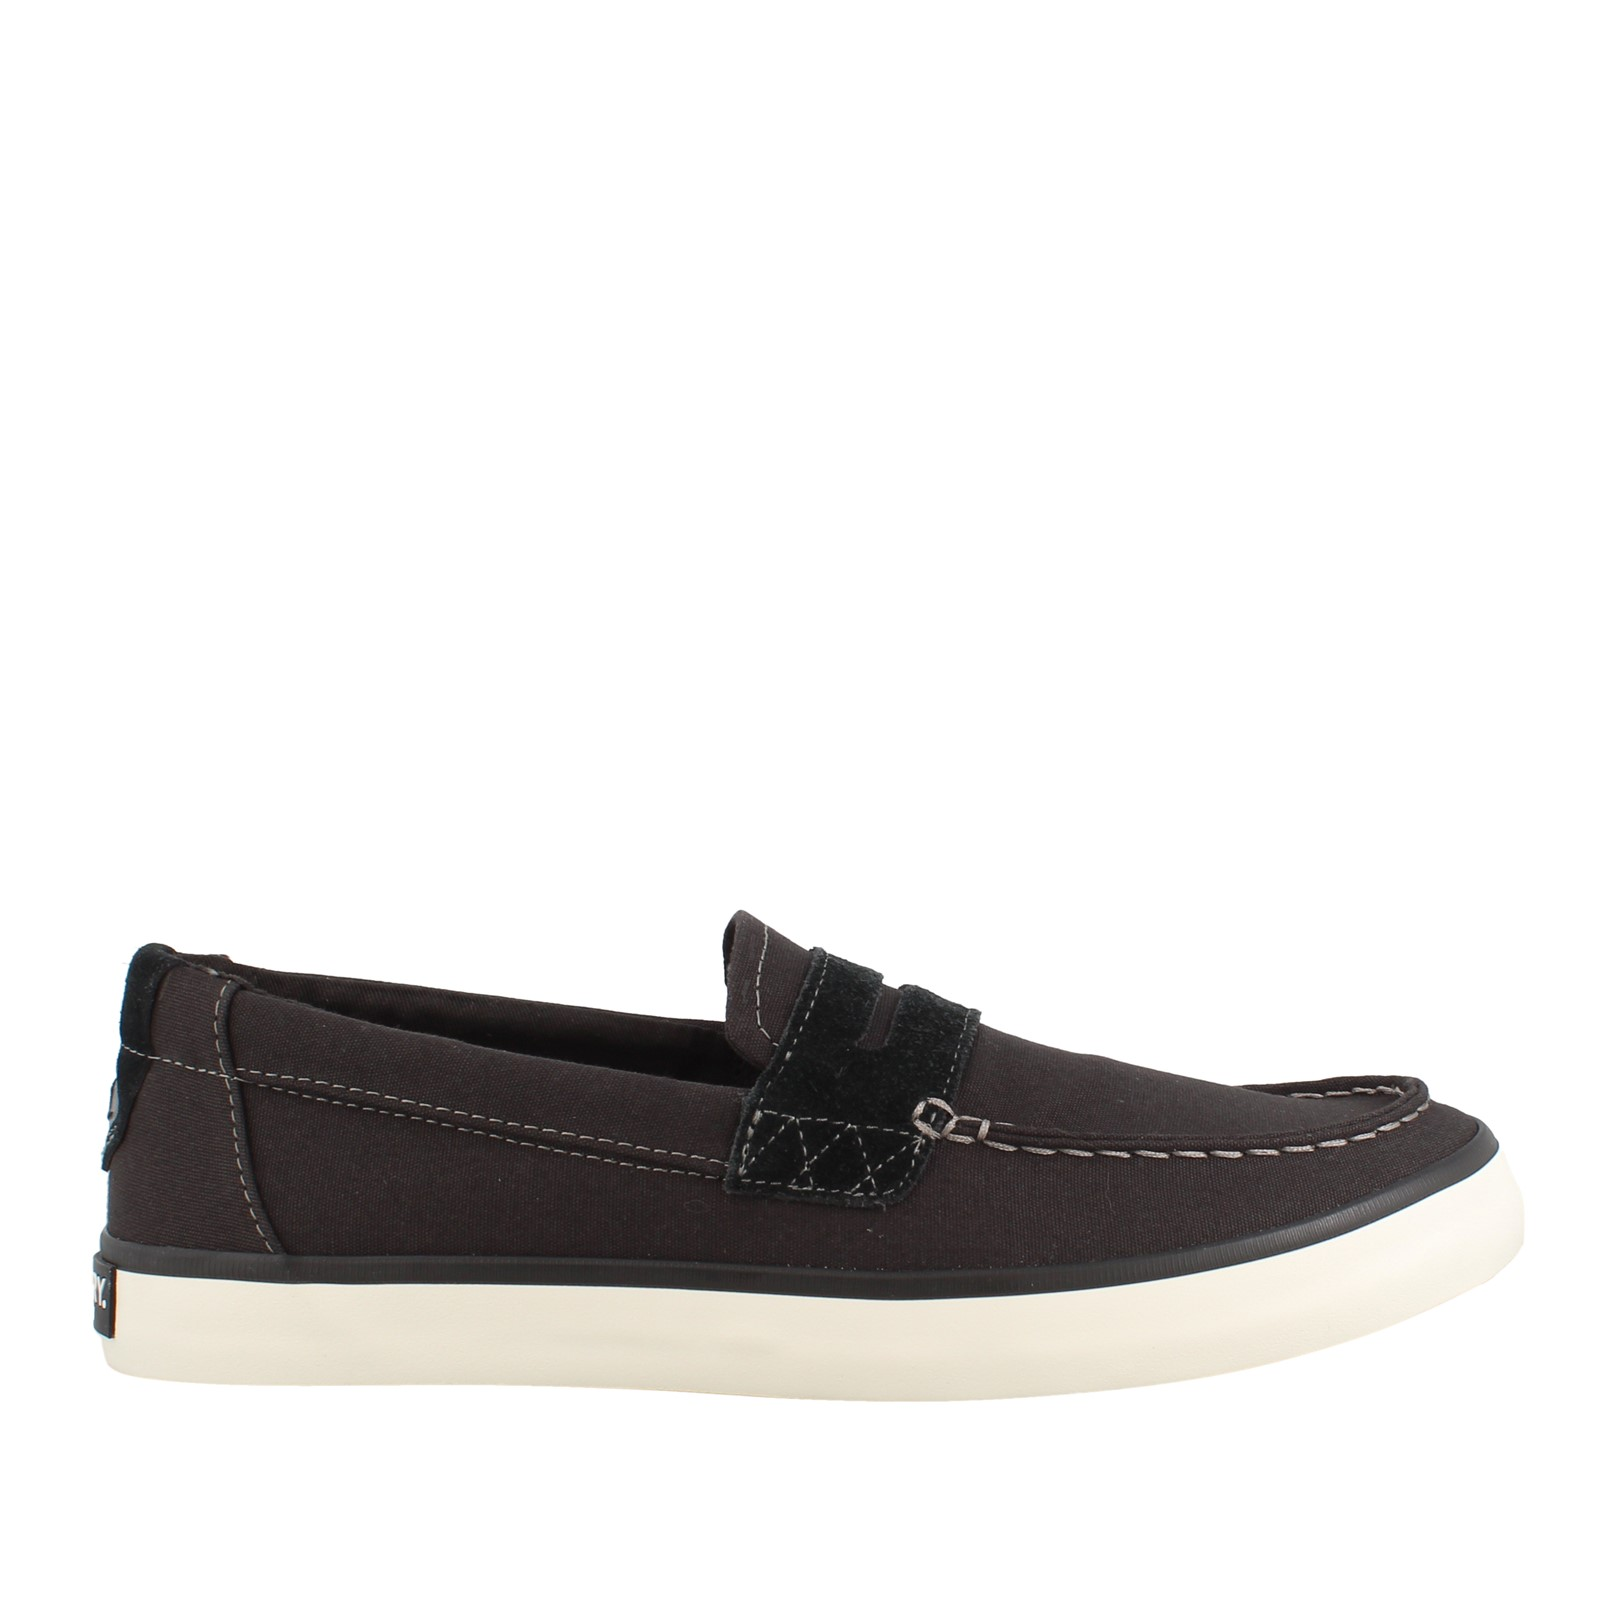 Men's Sperry, Mainsail Penny Slip On